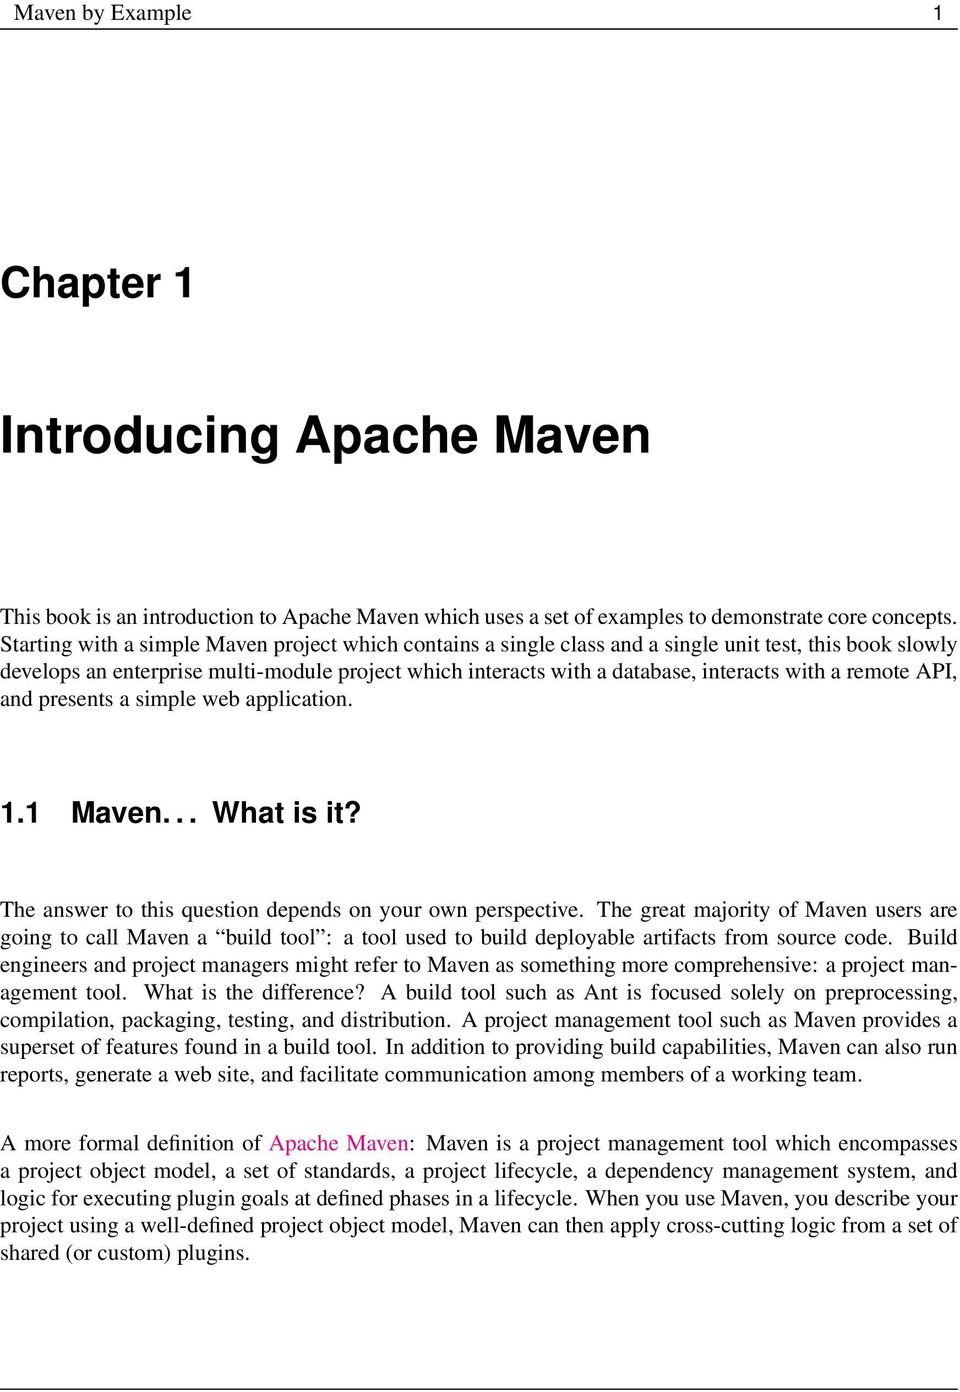 Maven by Example  Maven by Example  Ed PDF